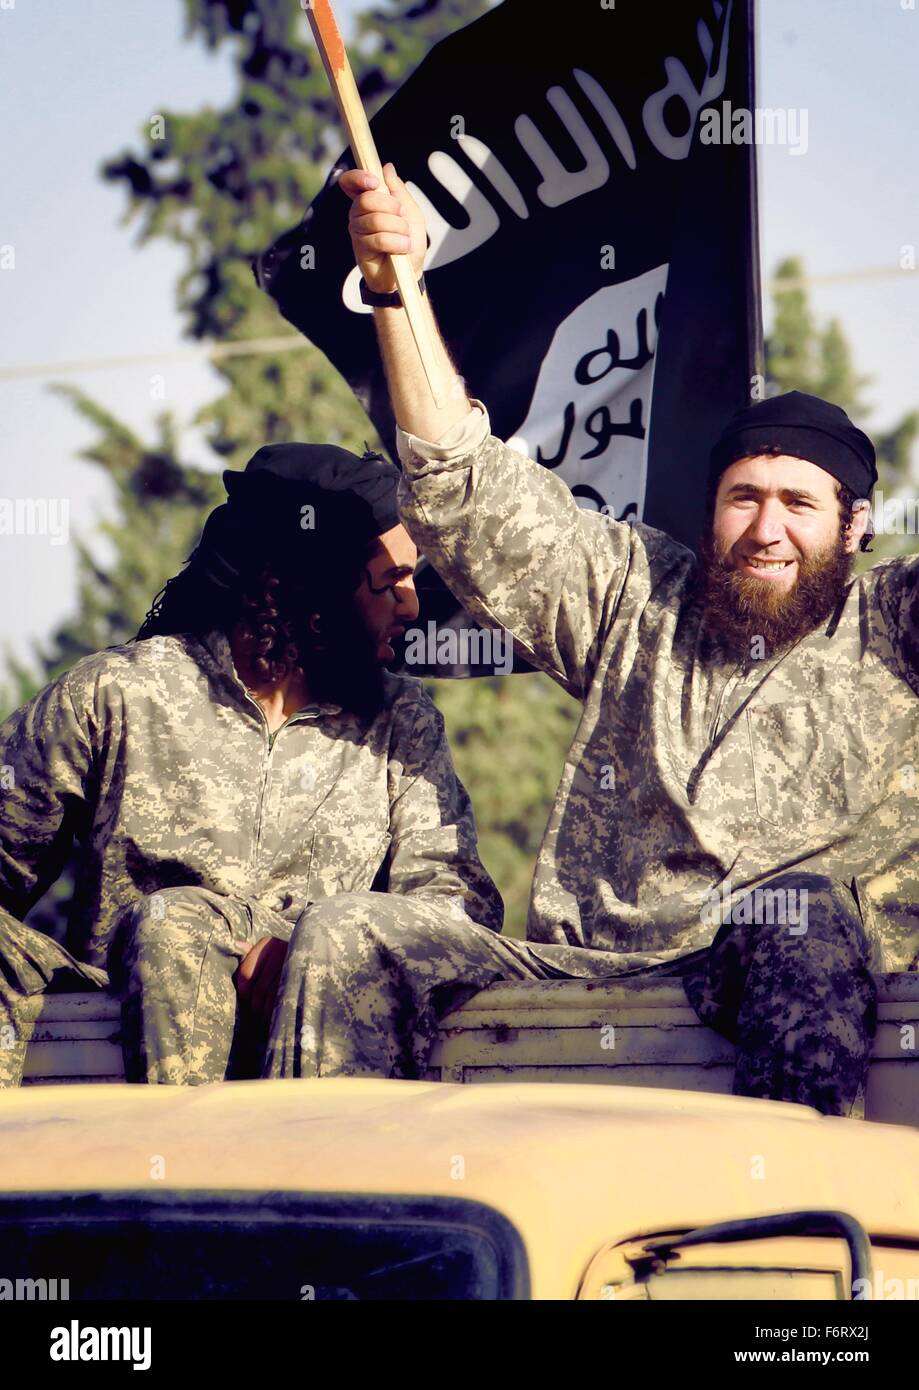 Islamic State of Iraq and the Levant propaganda photo showing ISIS militants parading June 30, 2014 in Raqqa, Northern Stock Photo